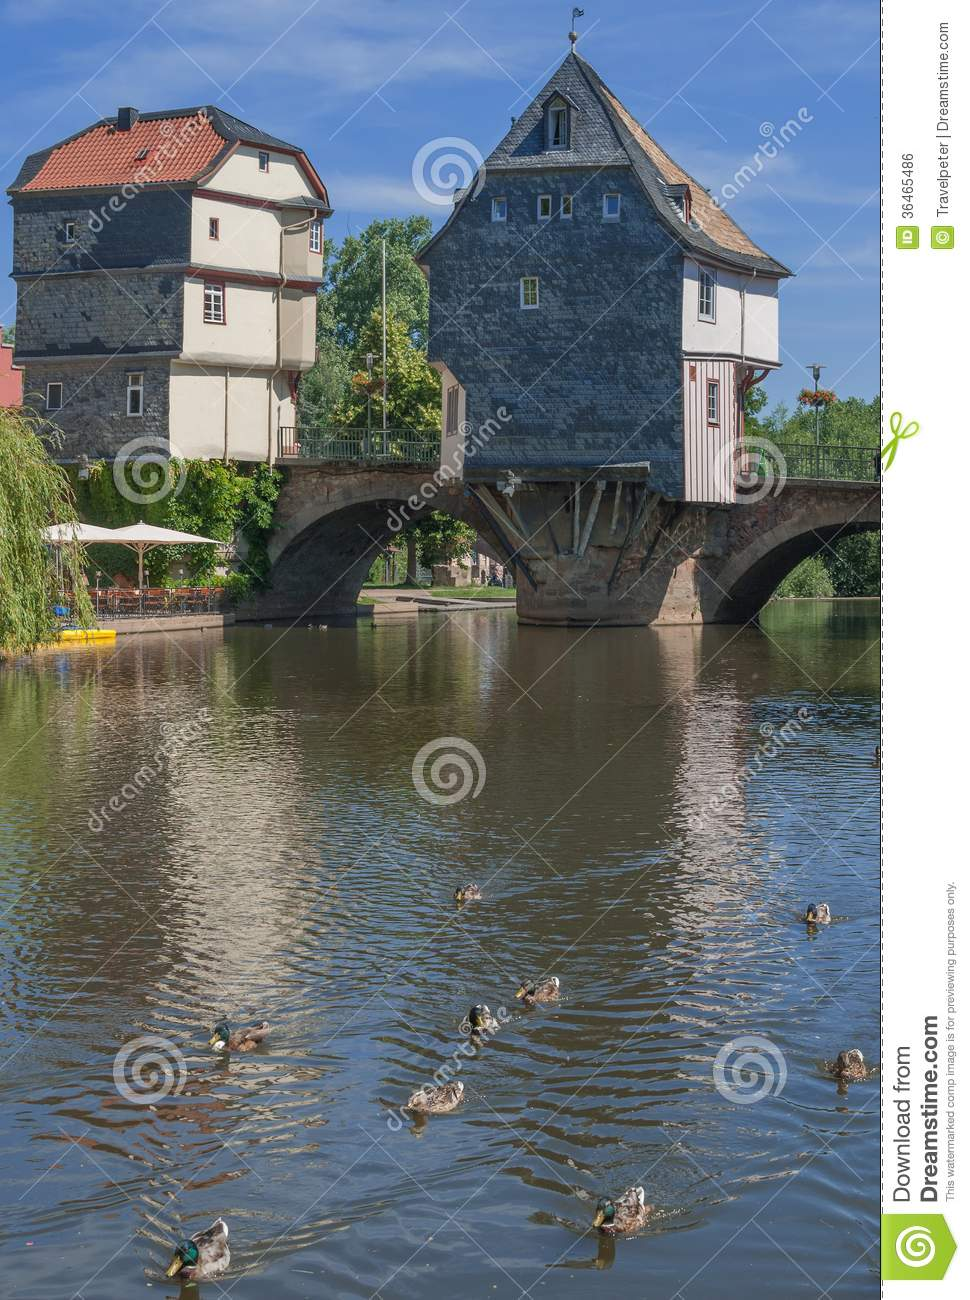 bad kreuznach rhineland palatinate germany stock photo image 36465486. Black Bedroom Furniture Sets. Home Design Ideas